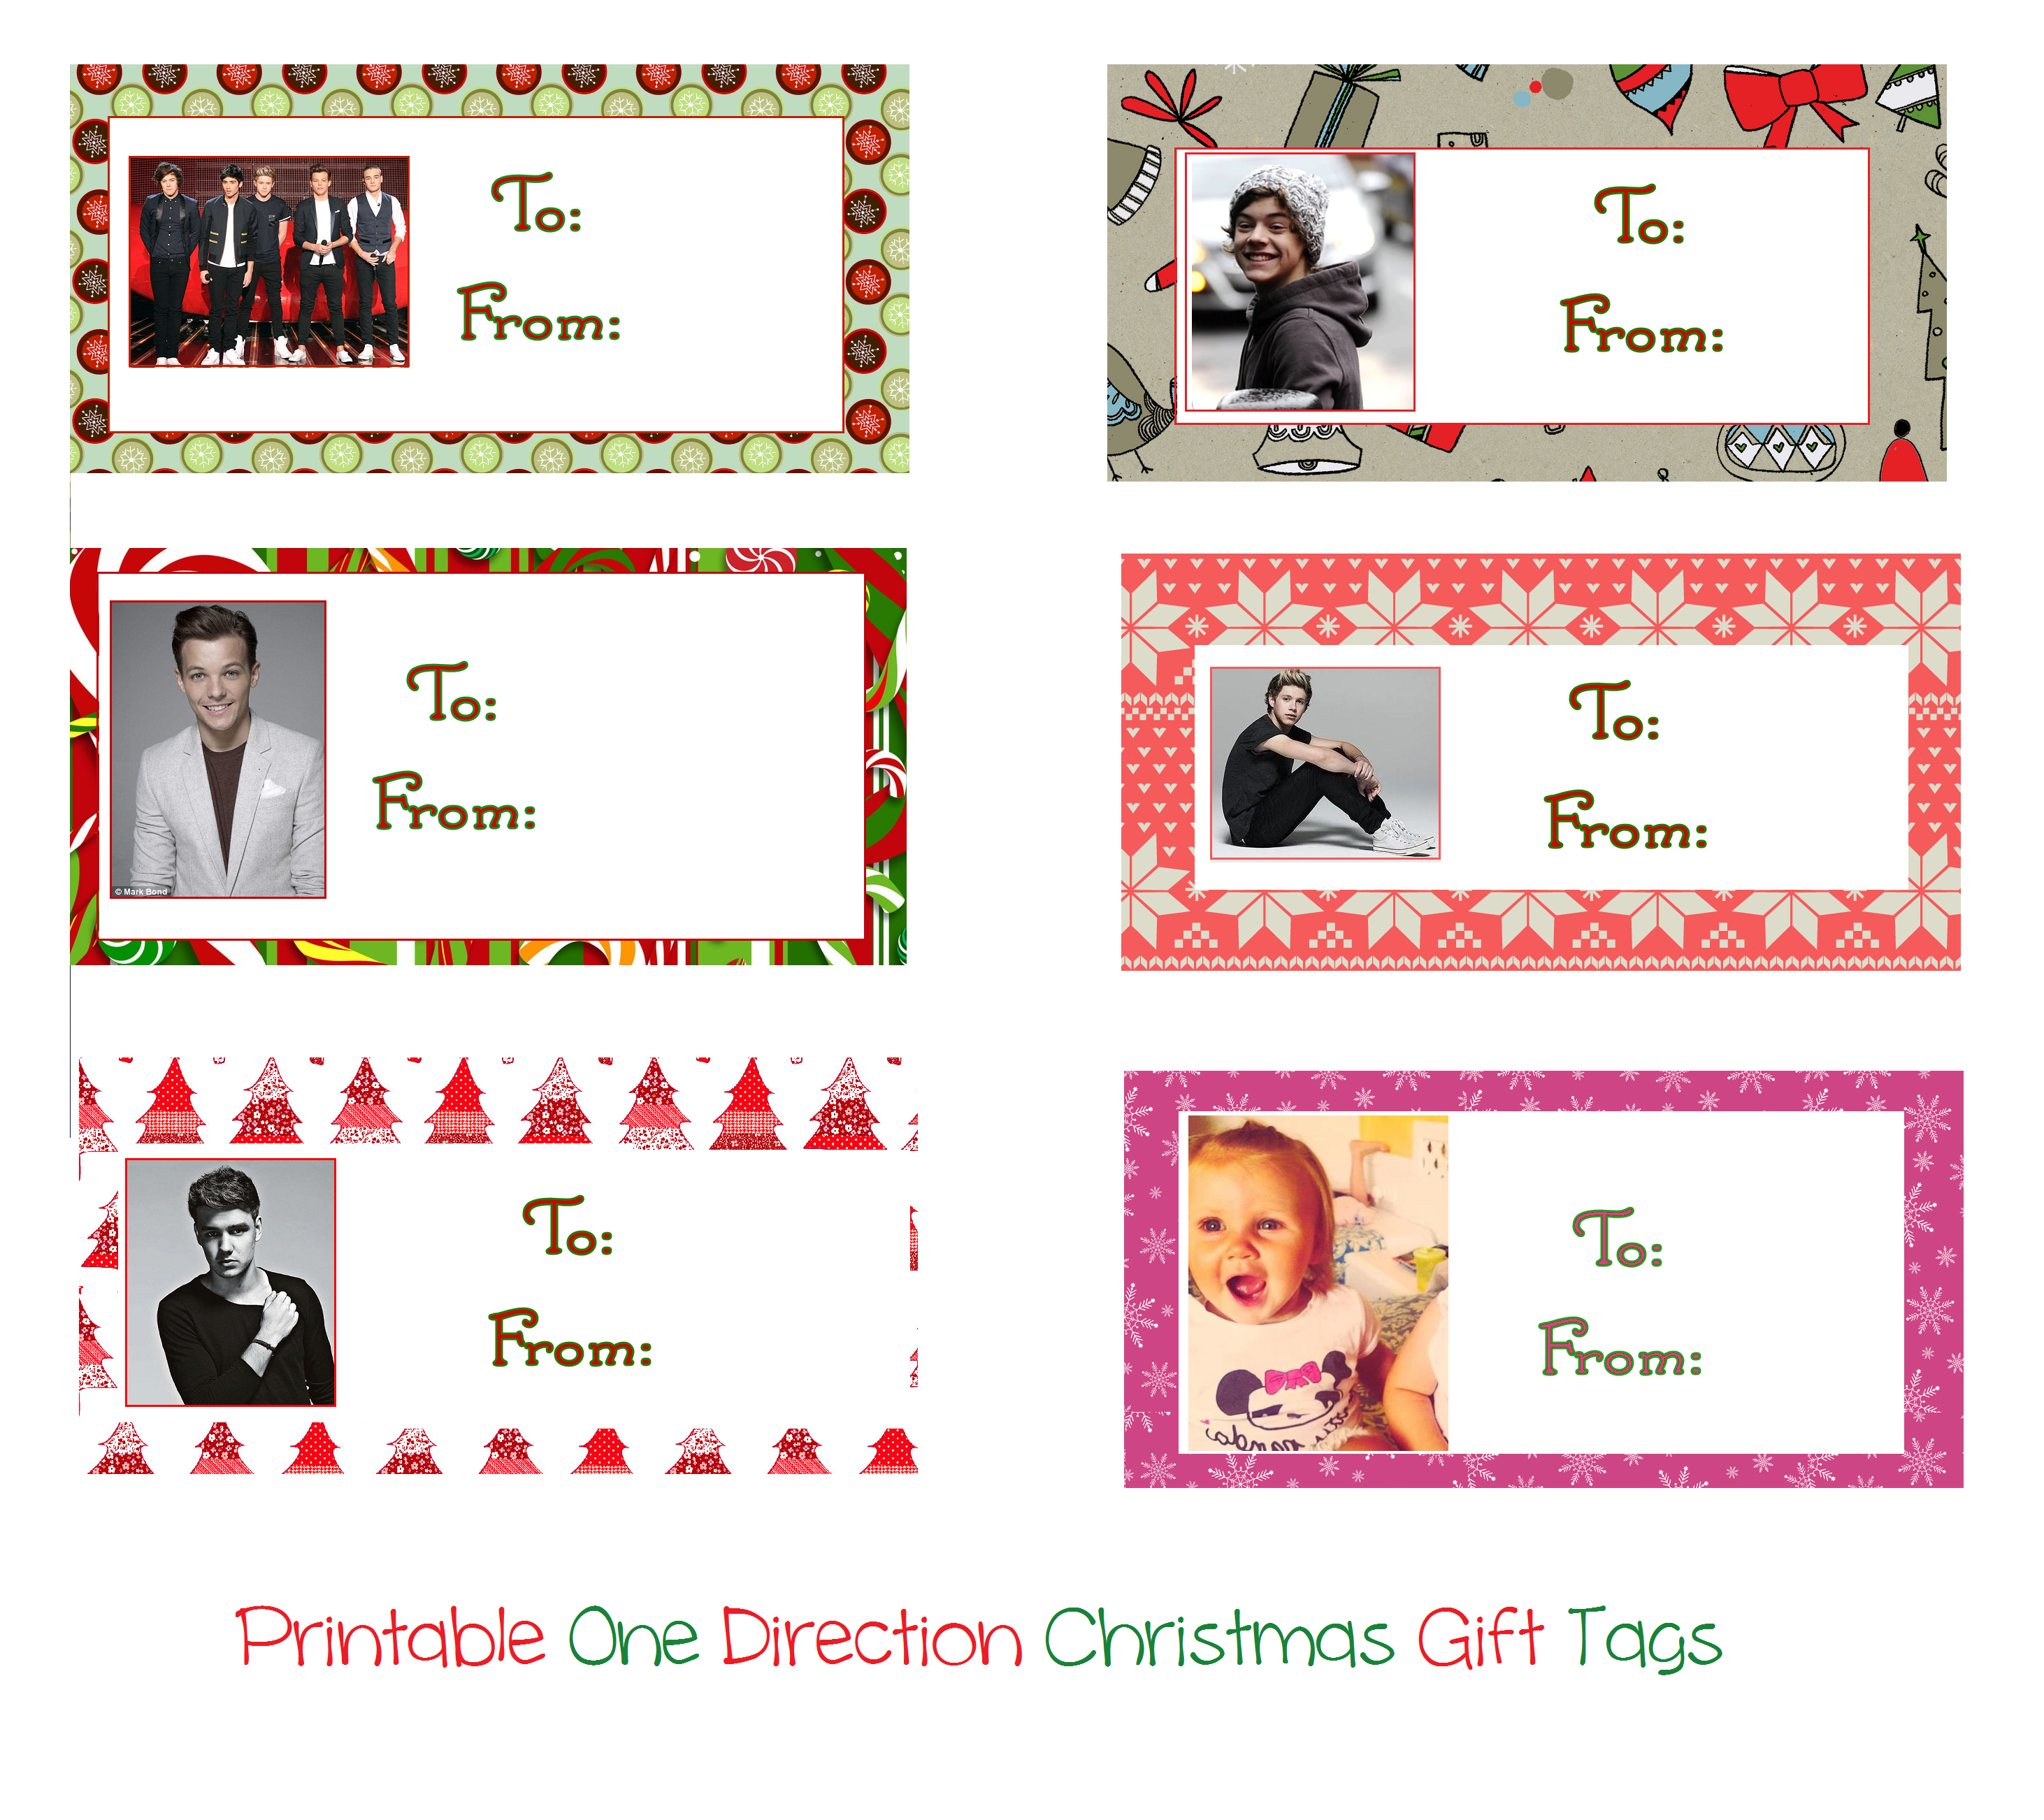 Printable One Direction Christmas Gift Tags by iluvlouis on DeviantArt